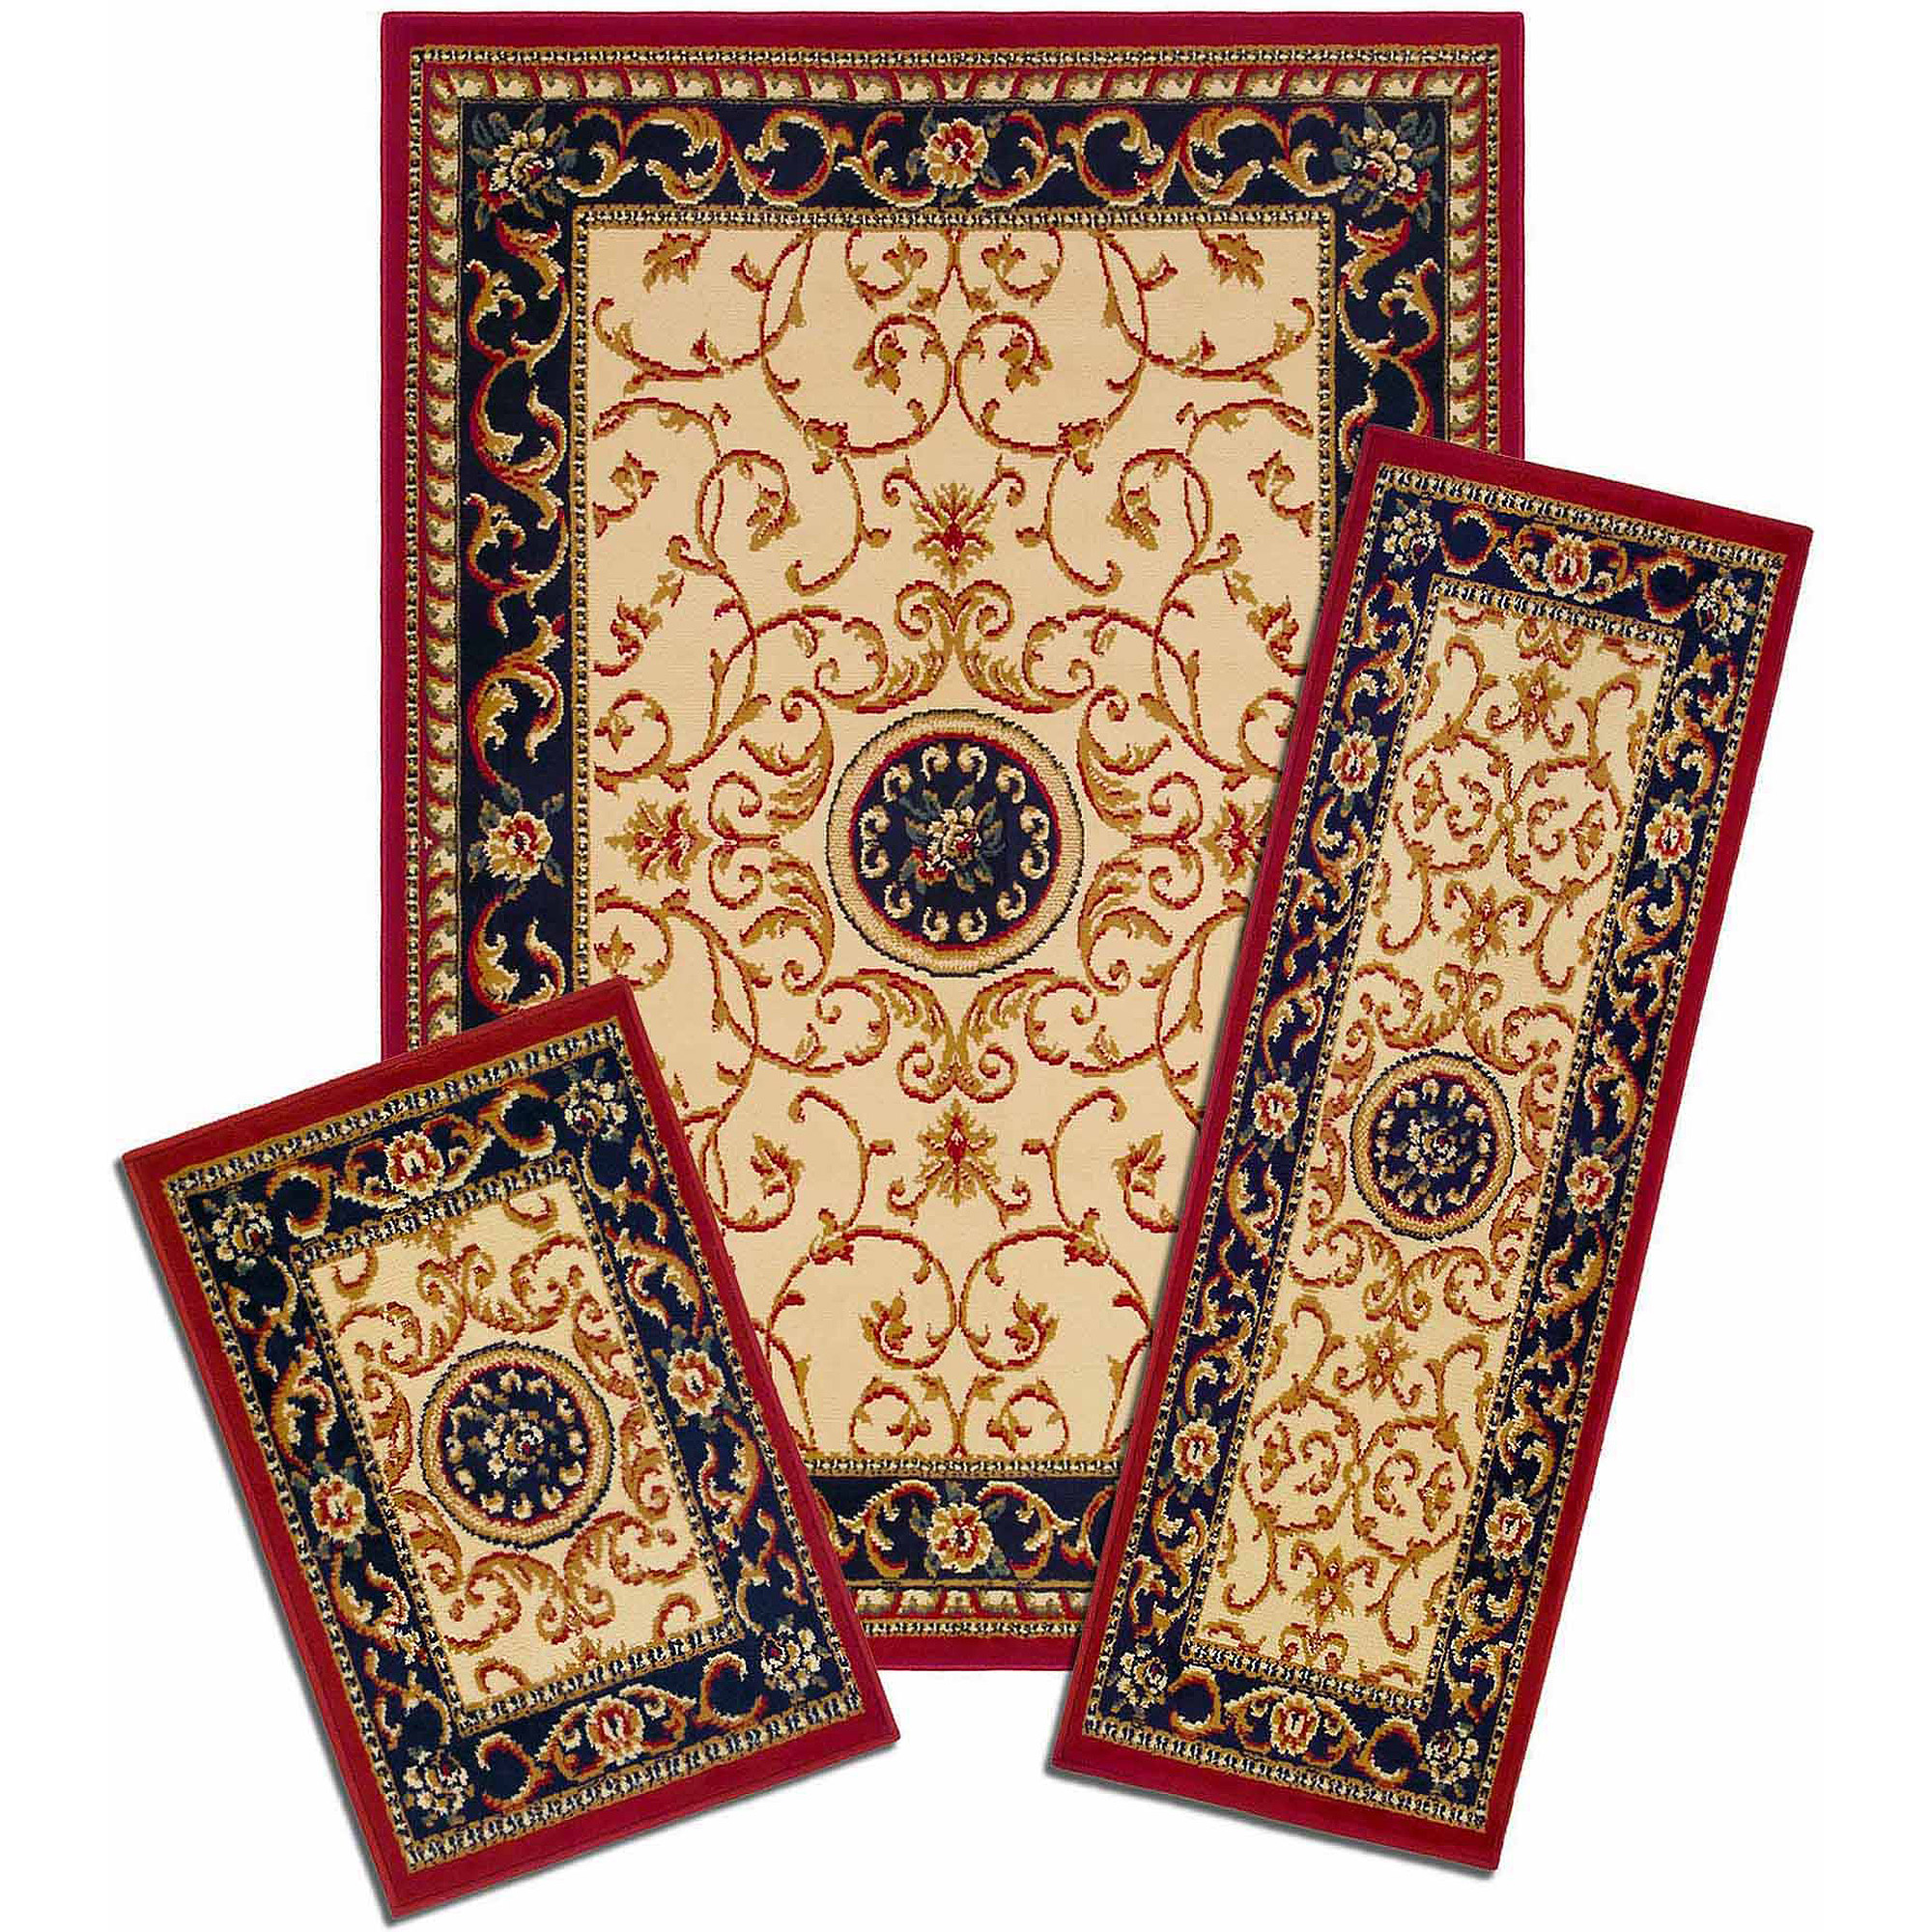 "Capri 3 Piece Rug Set, Wrought Iron Medallion 3-piece Capri area rug set contains: 5' x 7' area rug with matching 22"" x 59"" runner and 22"" x 31"" mat"